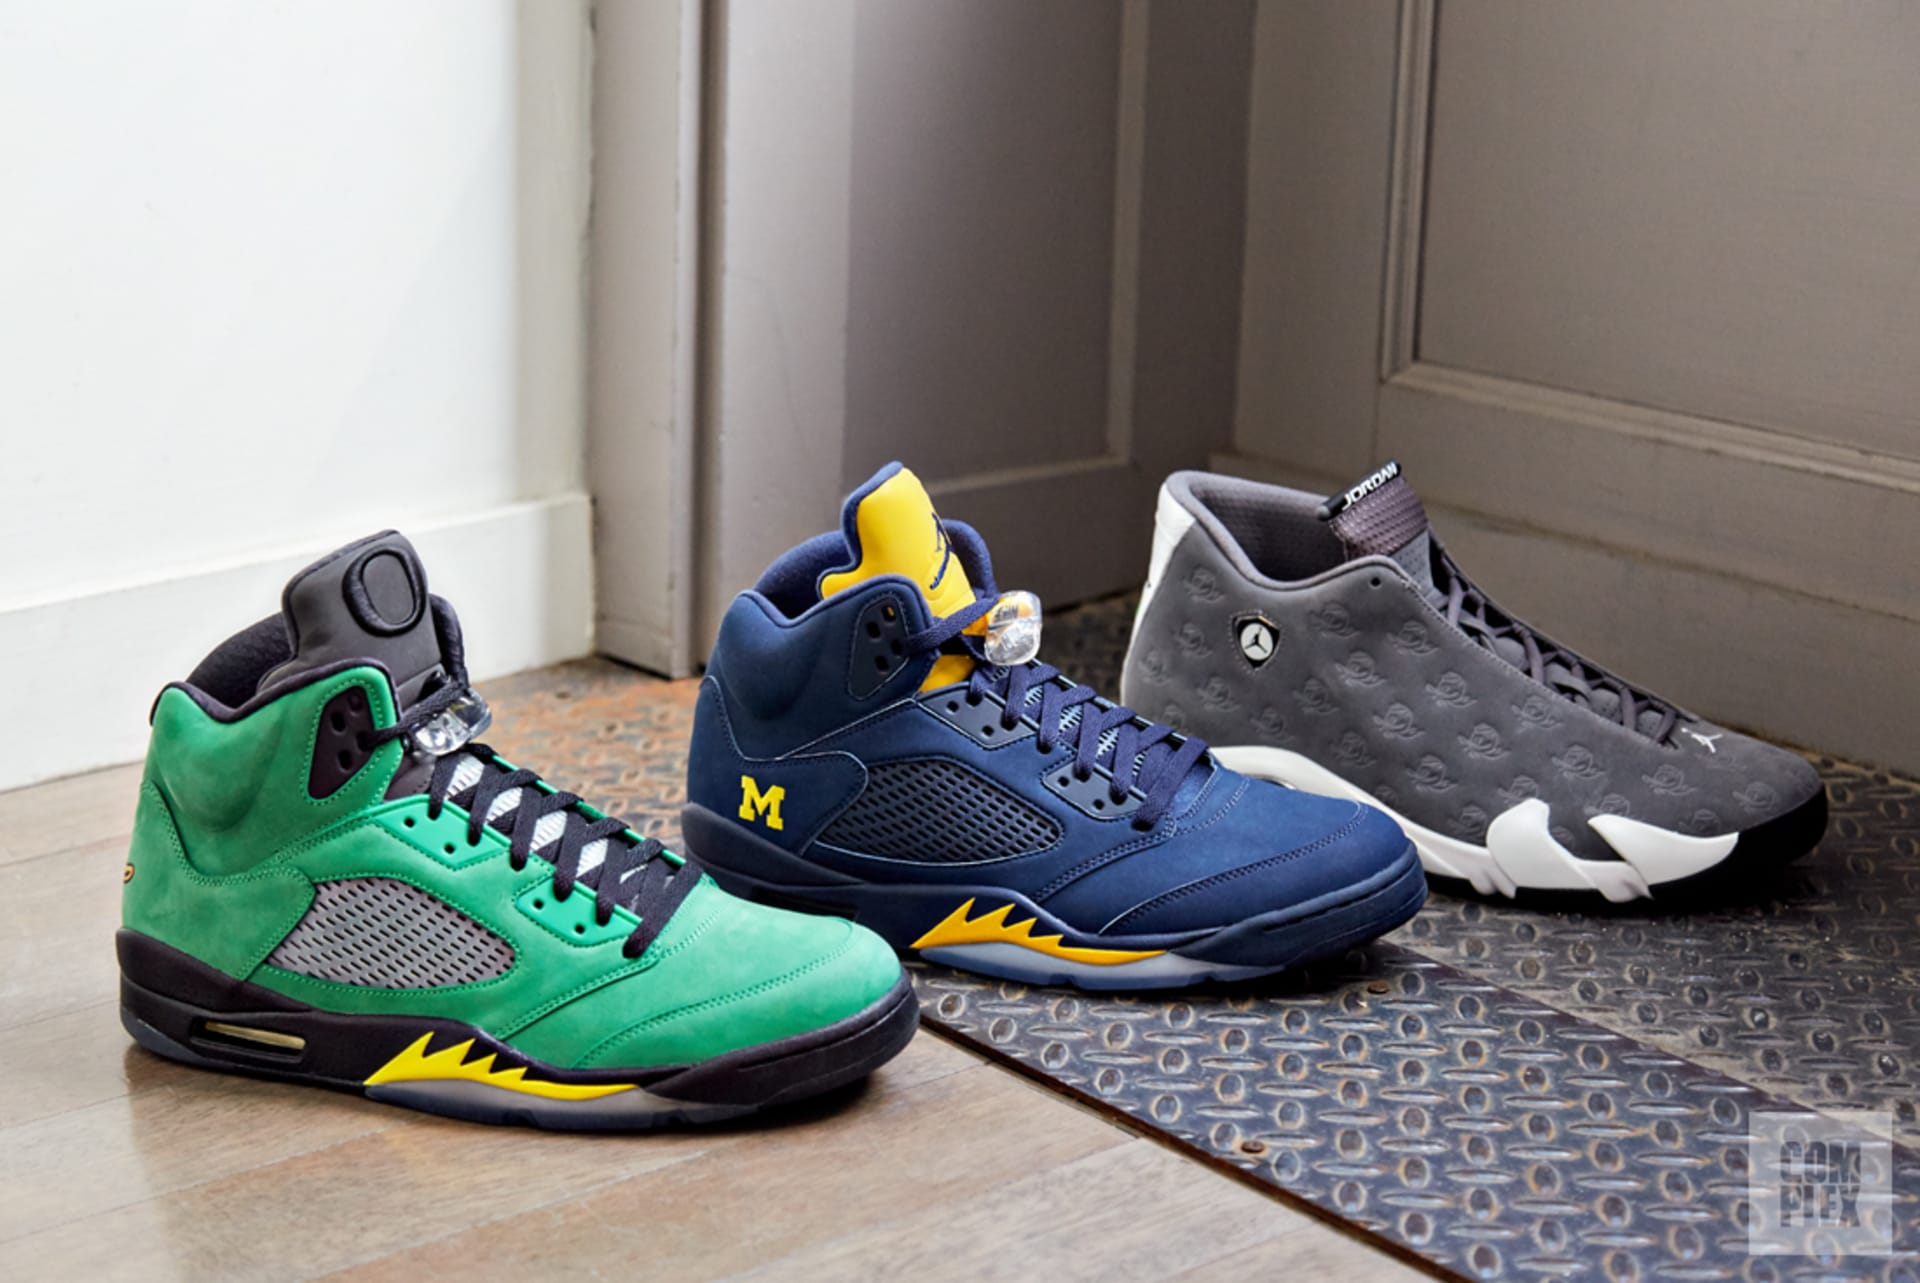 d35ae89ef4bf Air Jordan PEs made for the University of Oregon and Michigan. Sneakers  courtesy of Stadium Goods. Image via Complex Original David Cabrera